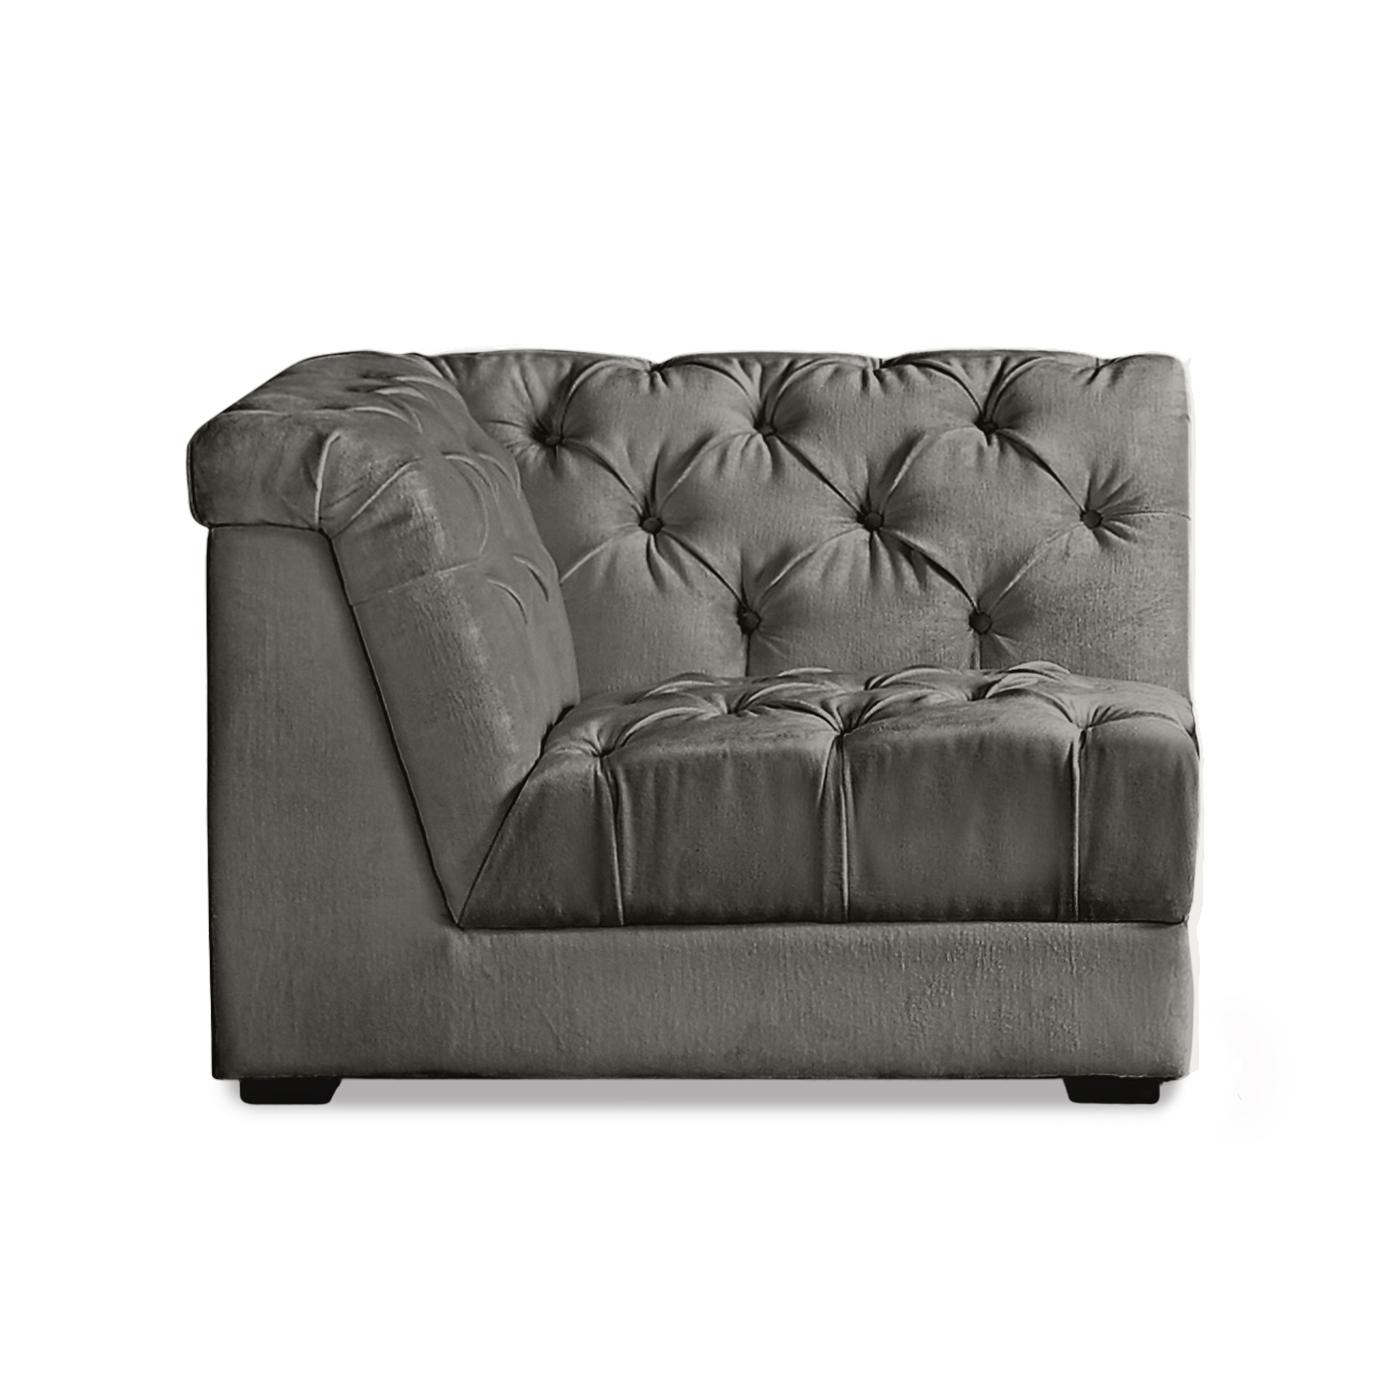 Ultra Charcoal Sectional Modular Sofa | Modern Furniture Pertaining To Modular Sofas (Image 20 of 20)